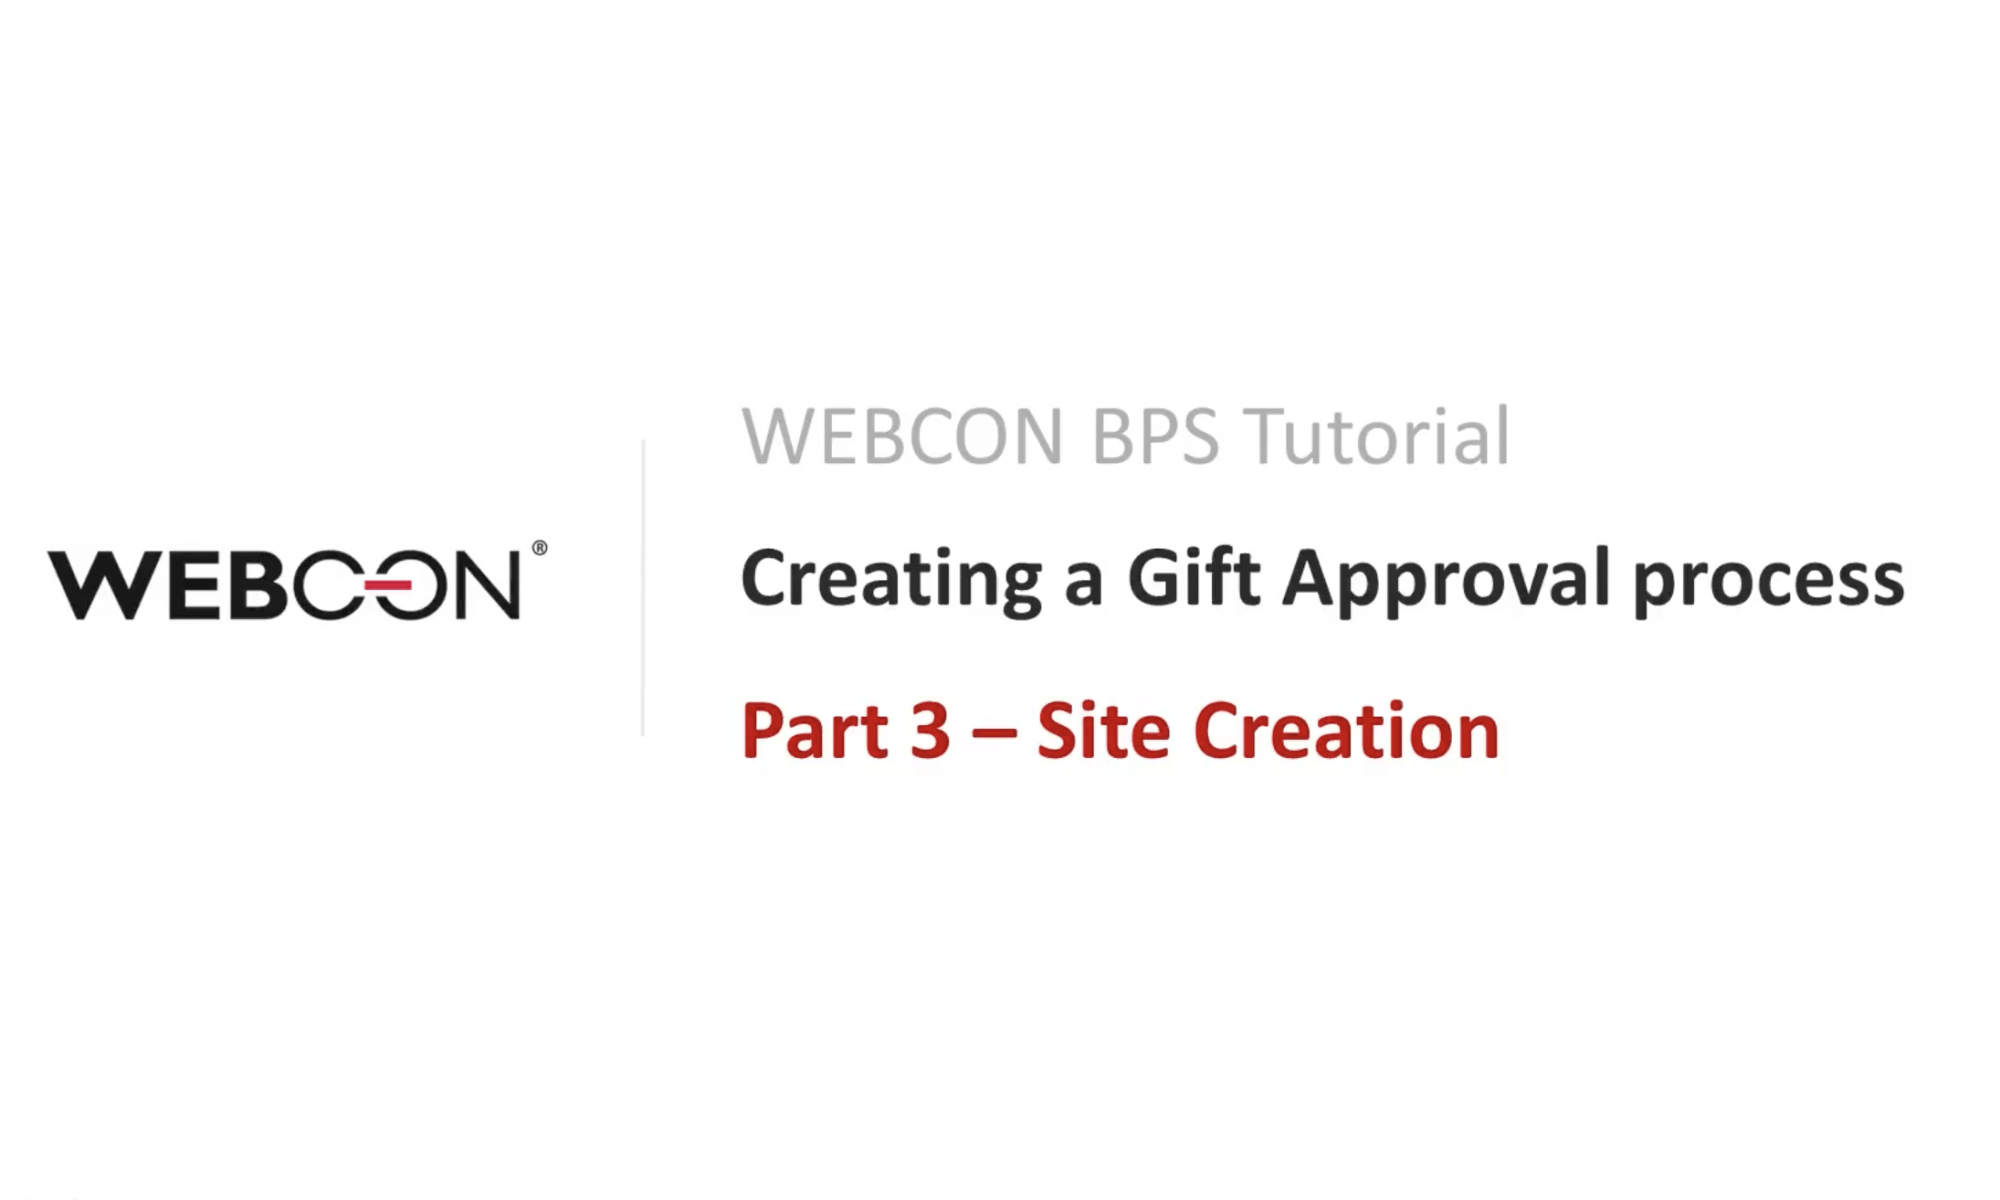 WEBCON BPS TUTORIAL Part 3